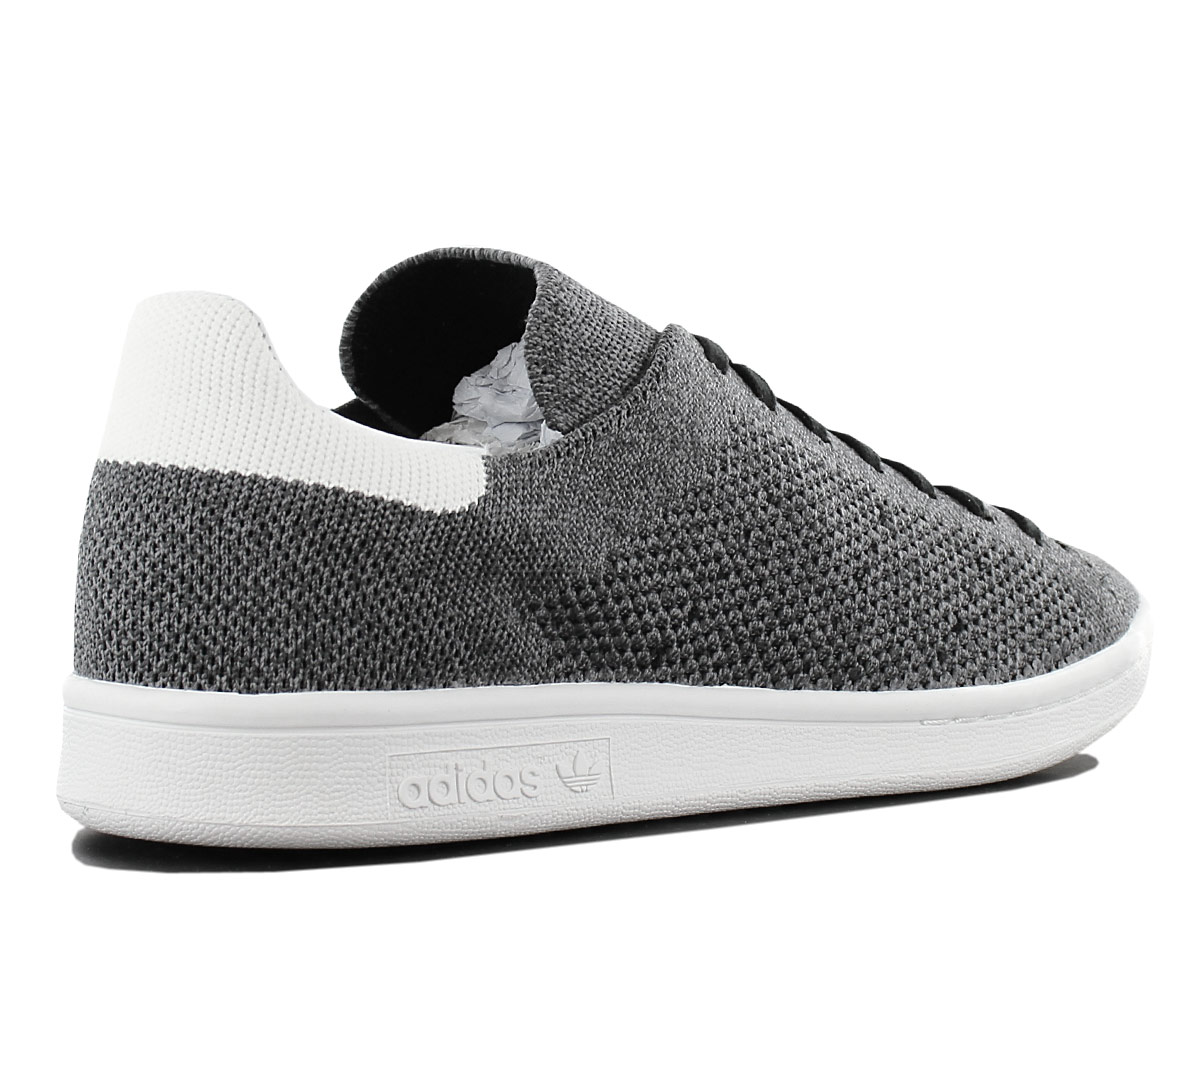 separation shoes abc0d 596b6 Adidas Originals Stan Smith Pk Primeknit Men s Sneakers Shoes Grey ...